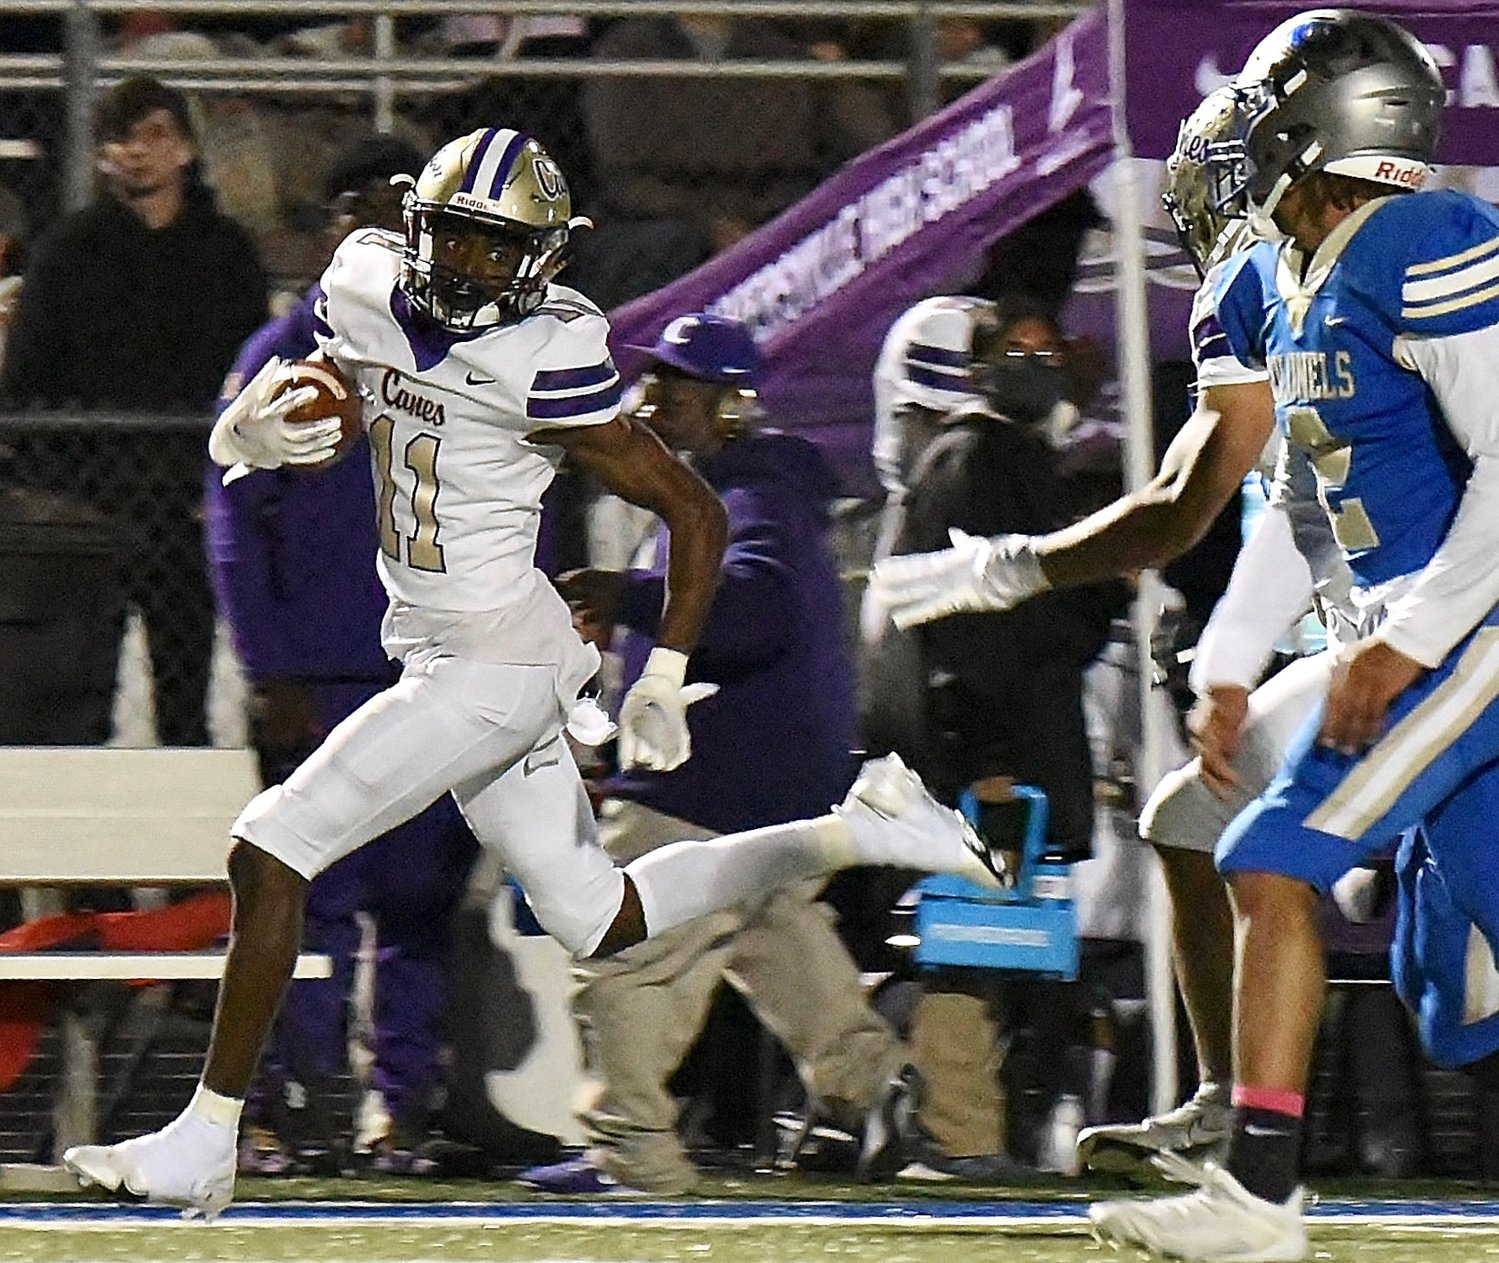 Cartersville senior Devonte Ross heads towards the end zone for one of his three touchdowns against Cass during a Region 7-AAAAA game Friday at Doug Cochran Stadium.